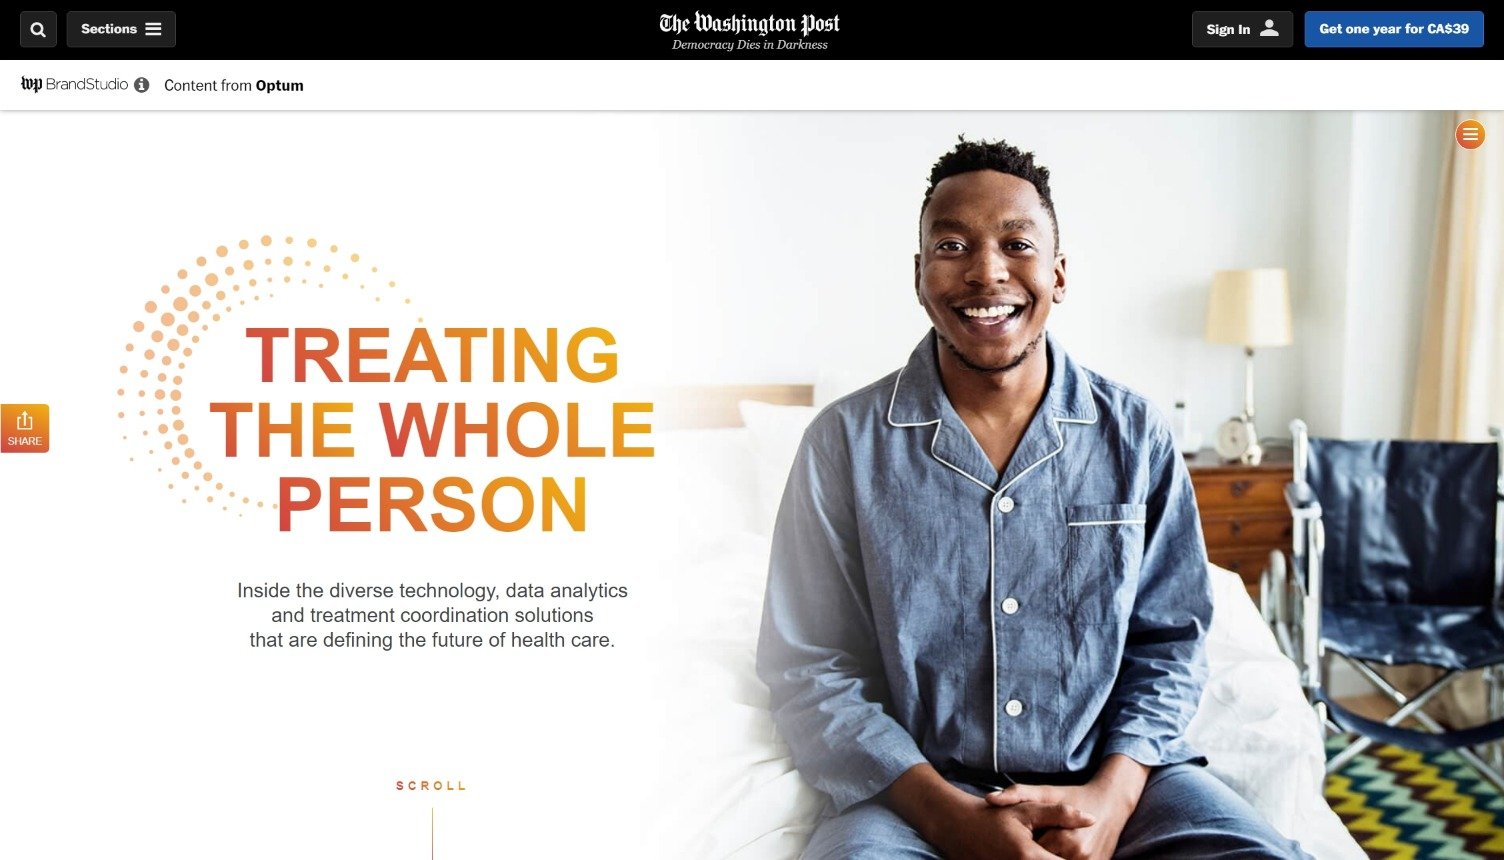 The Washnigton Post and Optum - Treating the whole person